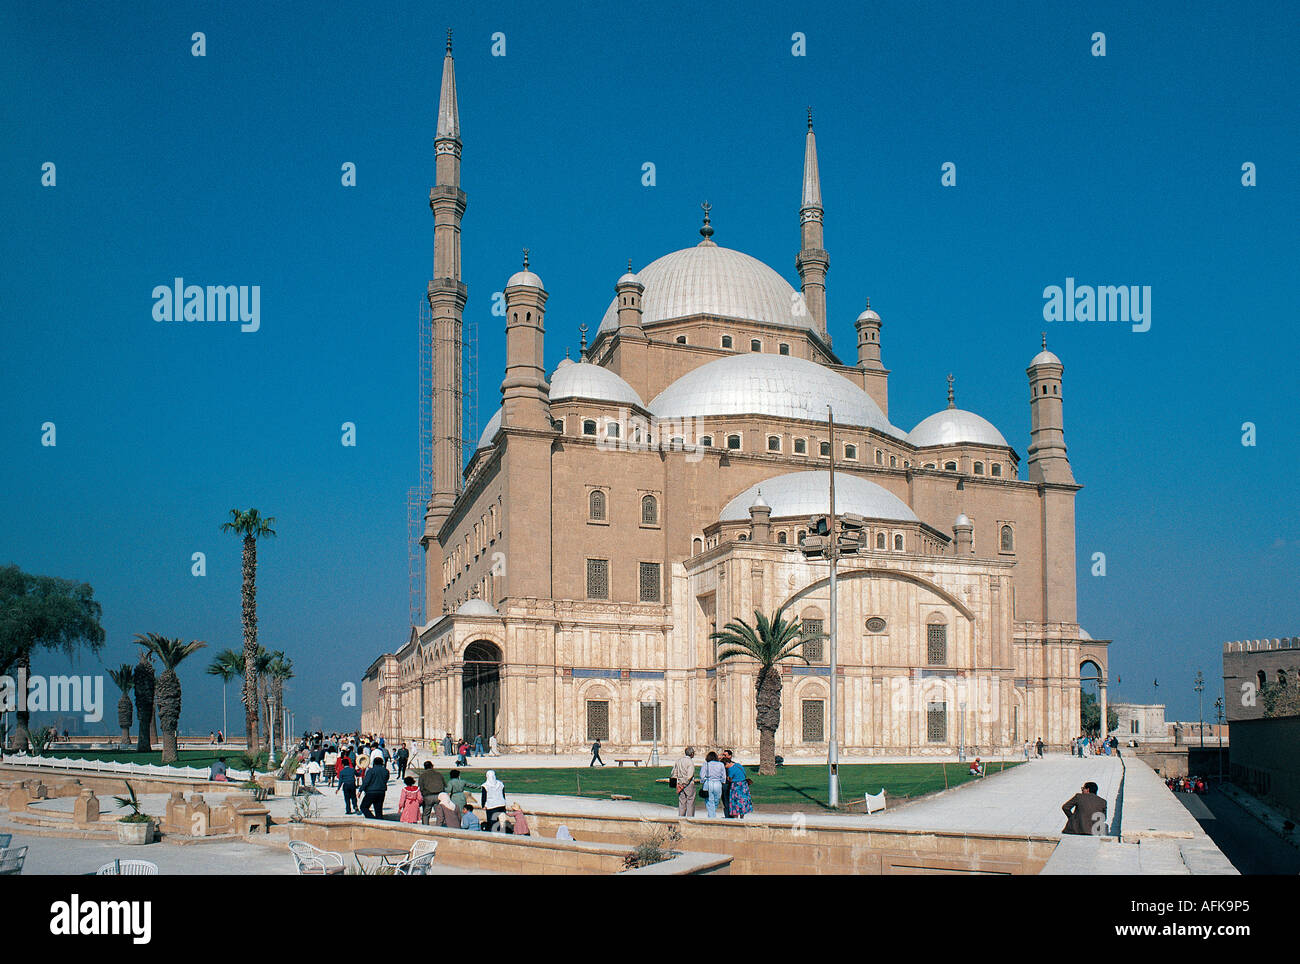 Mohammed Ali Mosque The Citadel Cairo Egypt - Stock Image